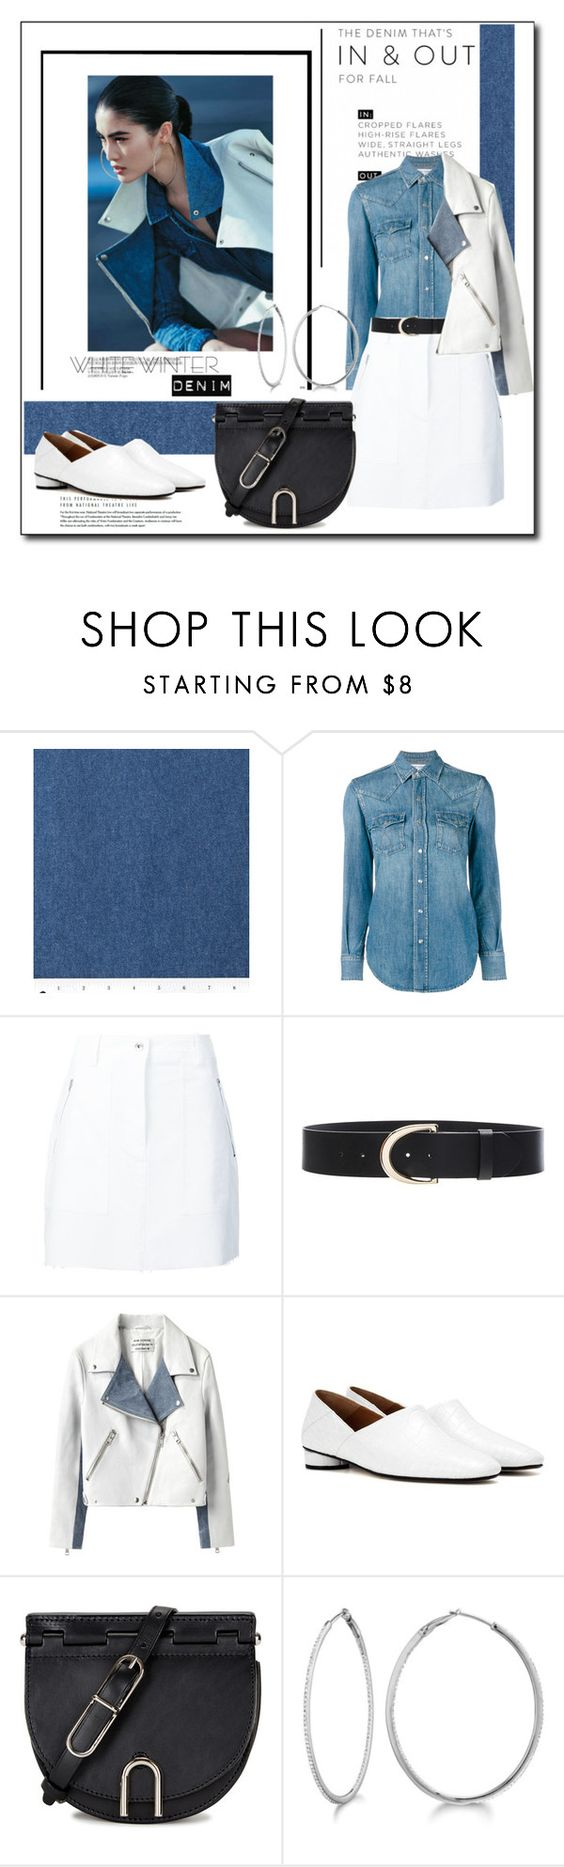 """White Winter Denim"" by littlefeather1 ❤ liked on Polyvore featuring Yves Saint Laurent, rag & bone, Frame Denim, Acne Studios, The Row, 3.1 Phillip Lim, Allurez, topsets and polyvoreeditorial"